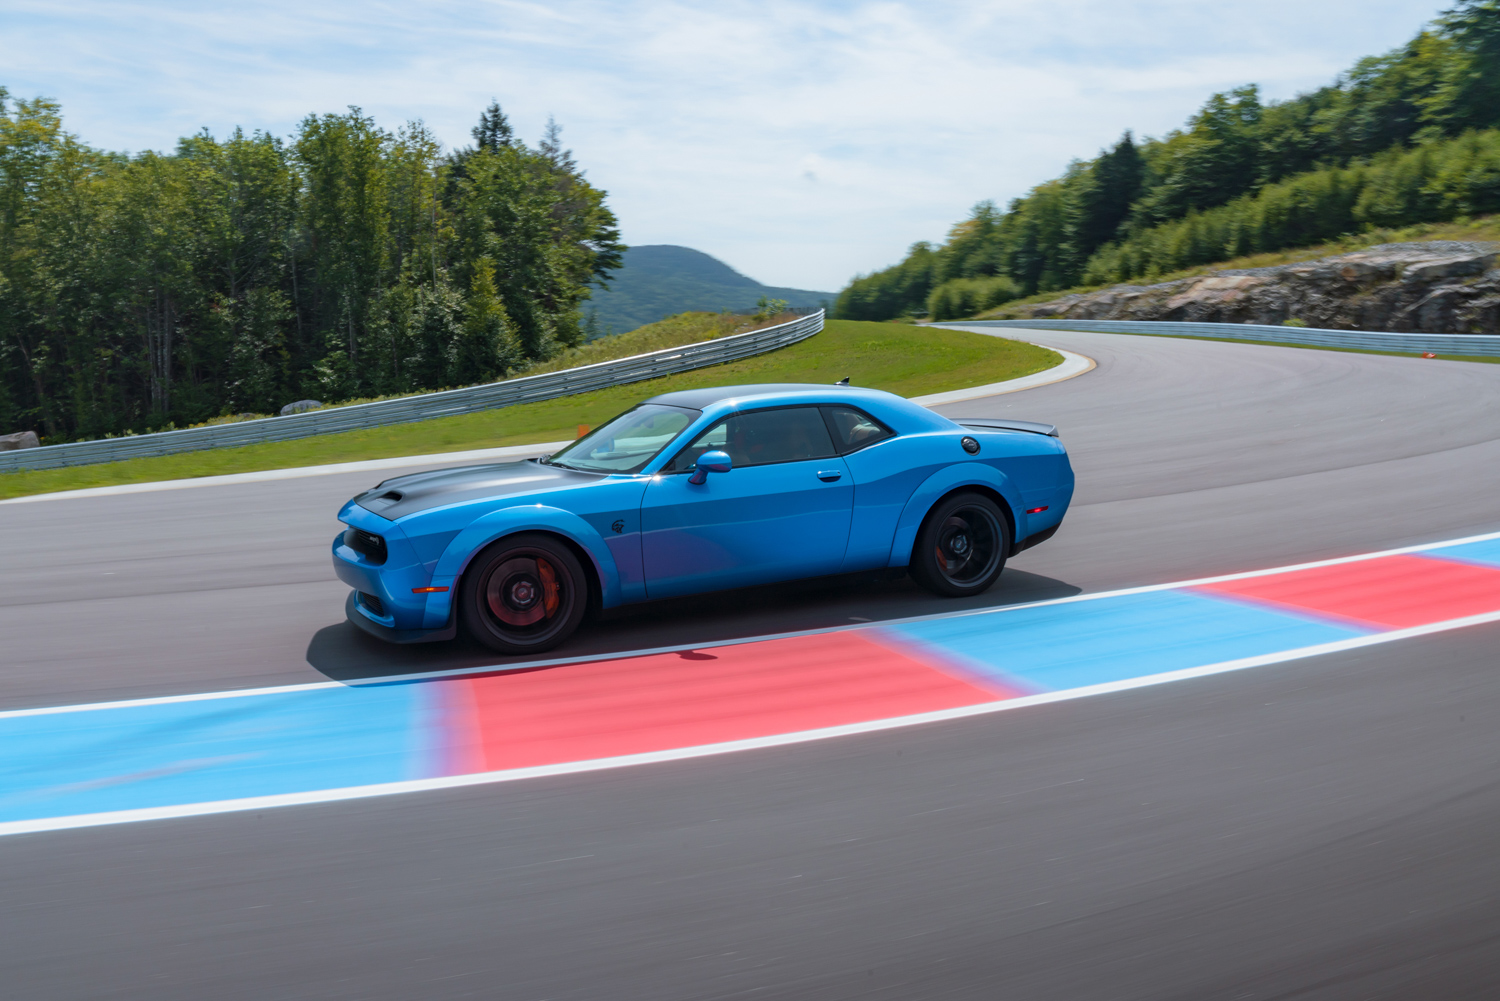 2019 Challenger SRT Hellcat Redeye Widebody on track curb